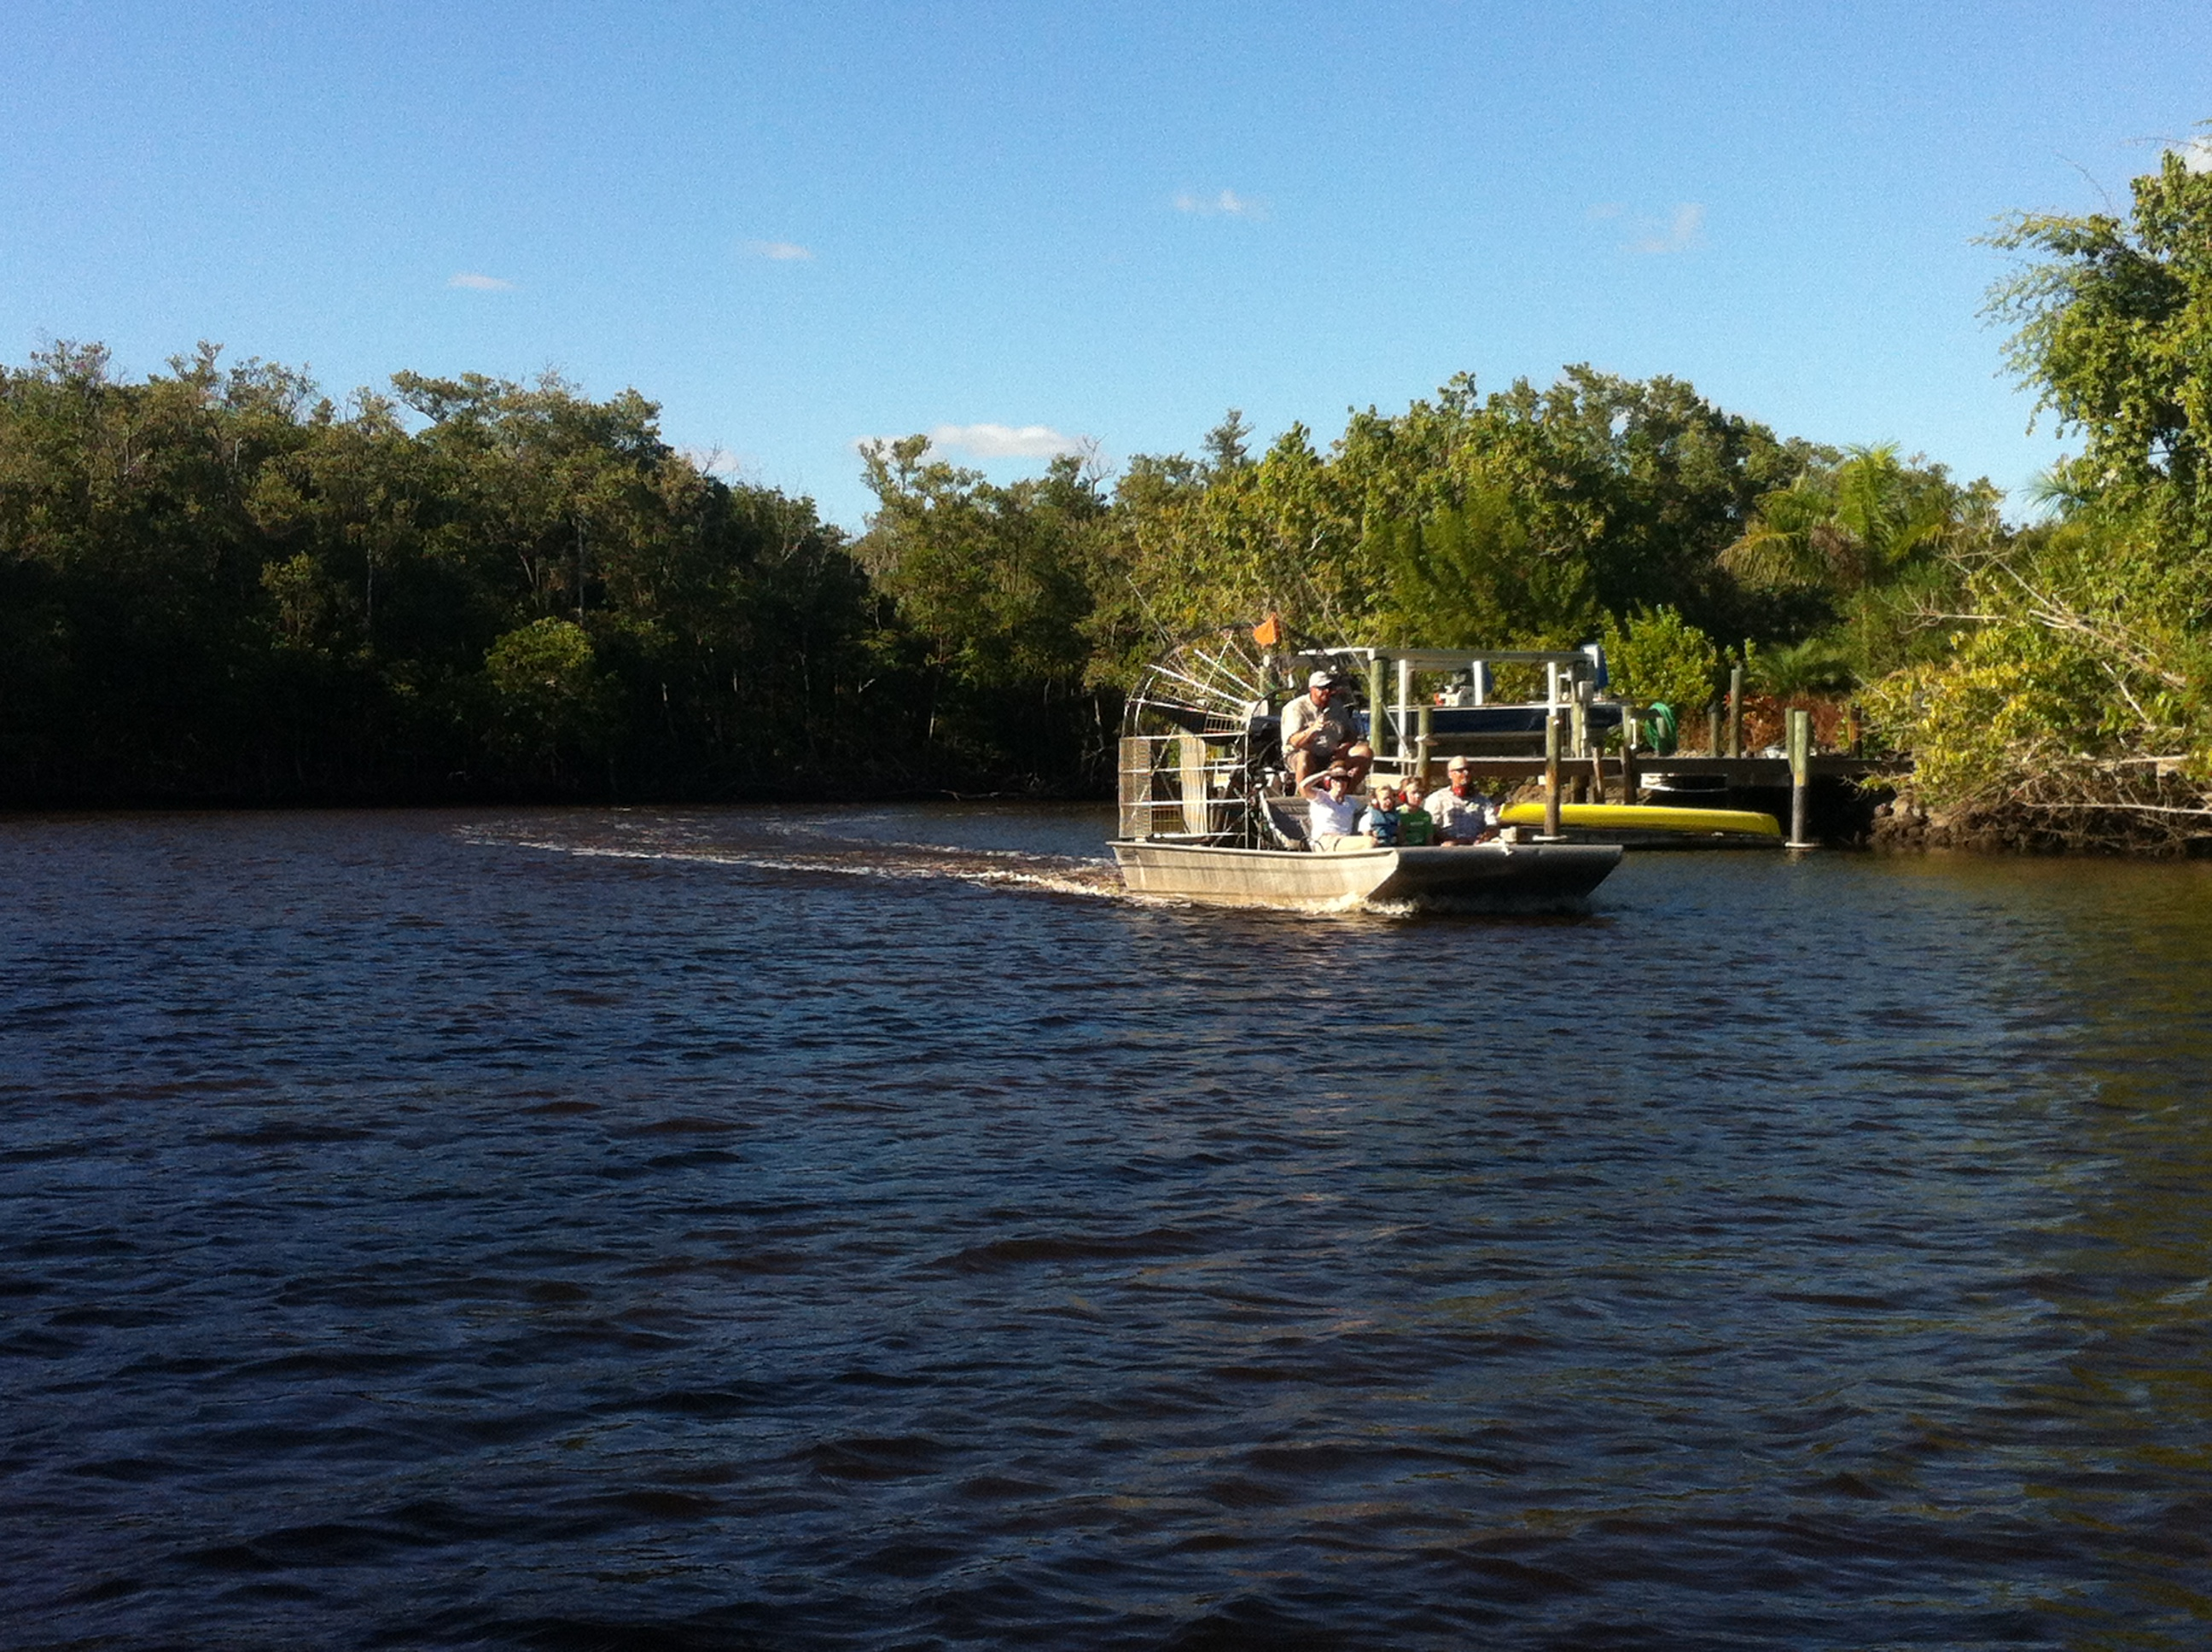 A visit to Everglades City